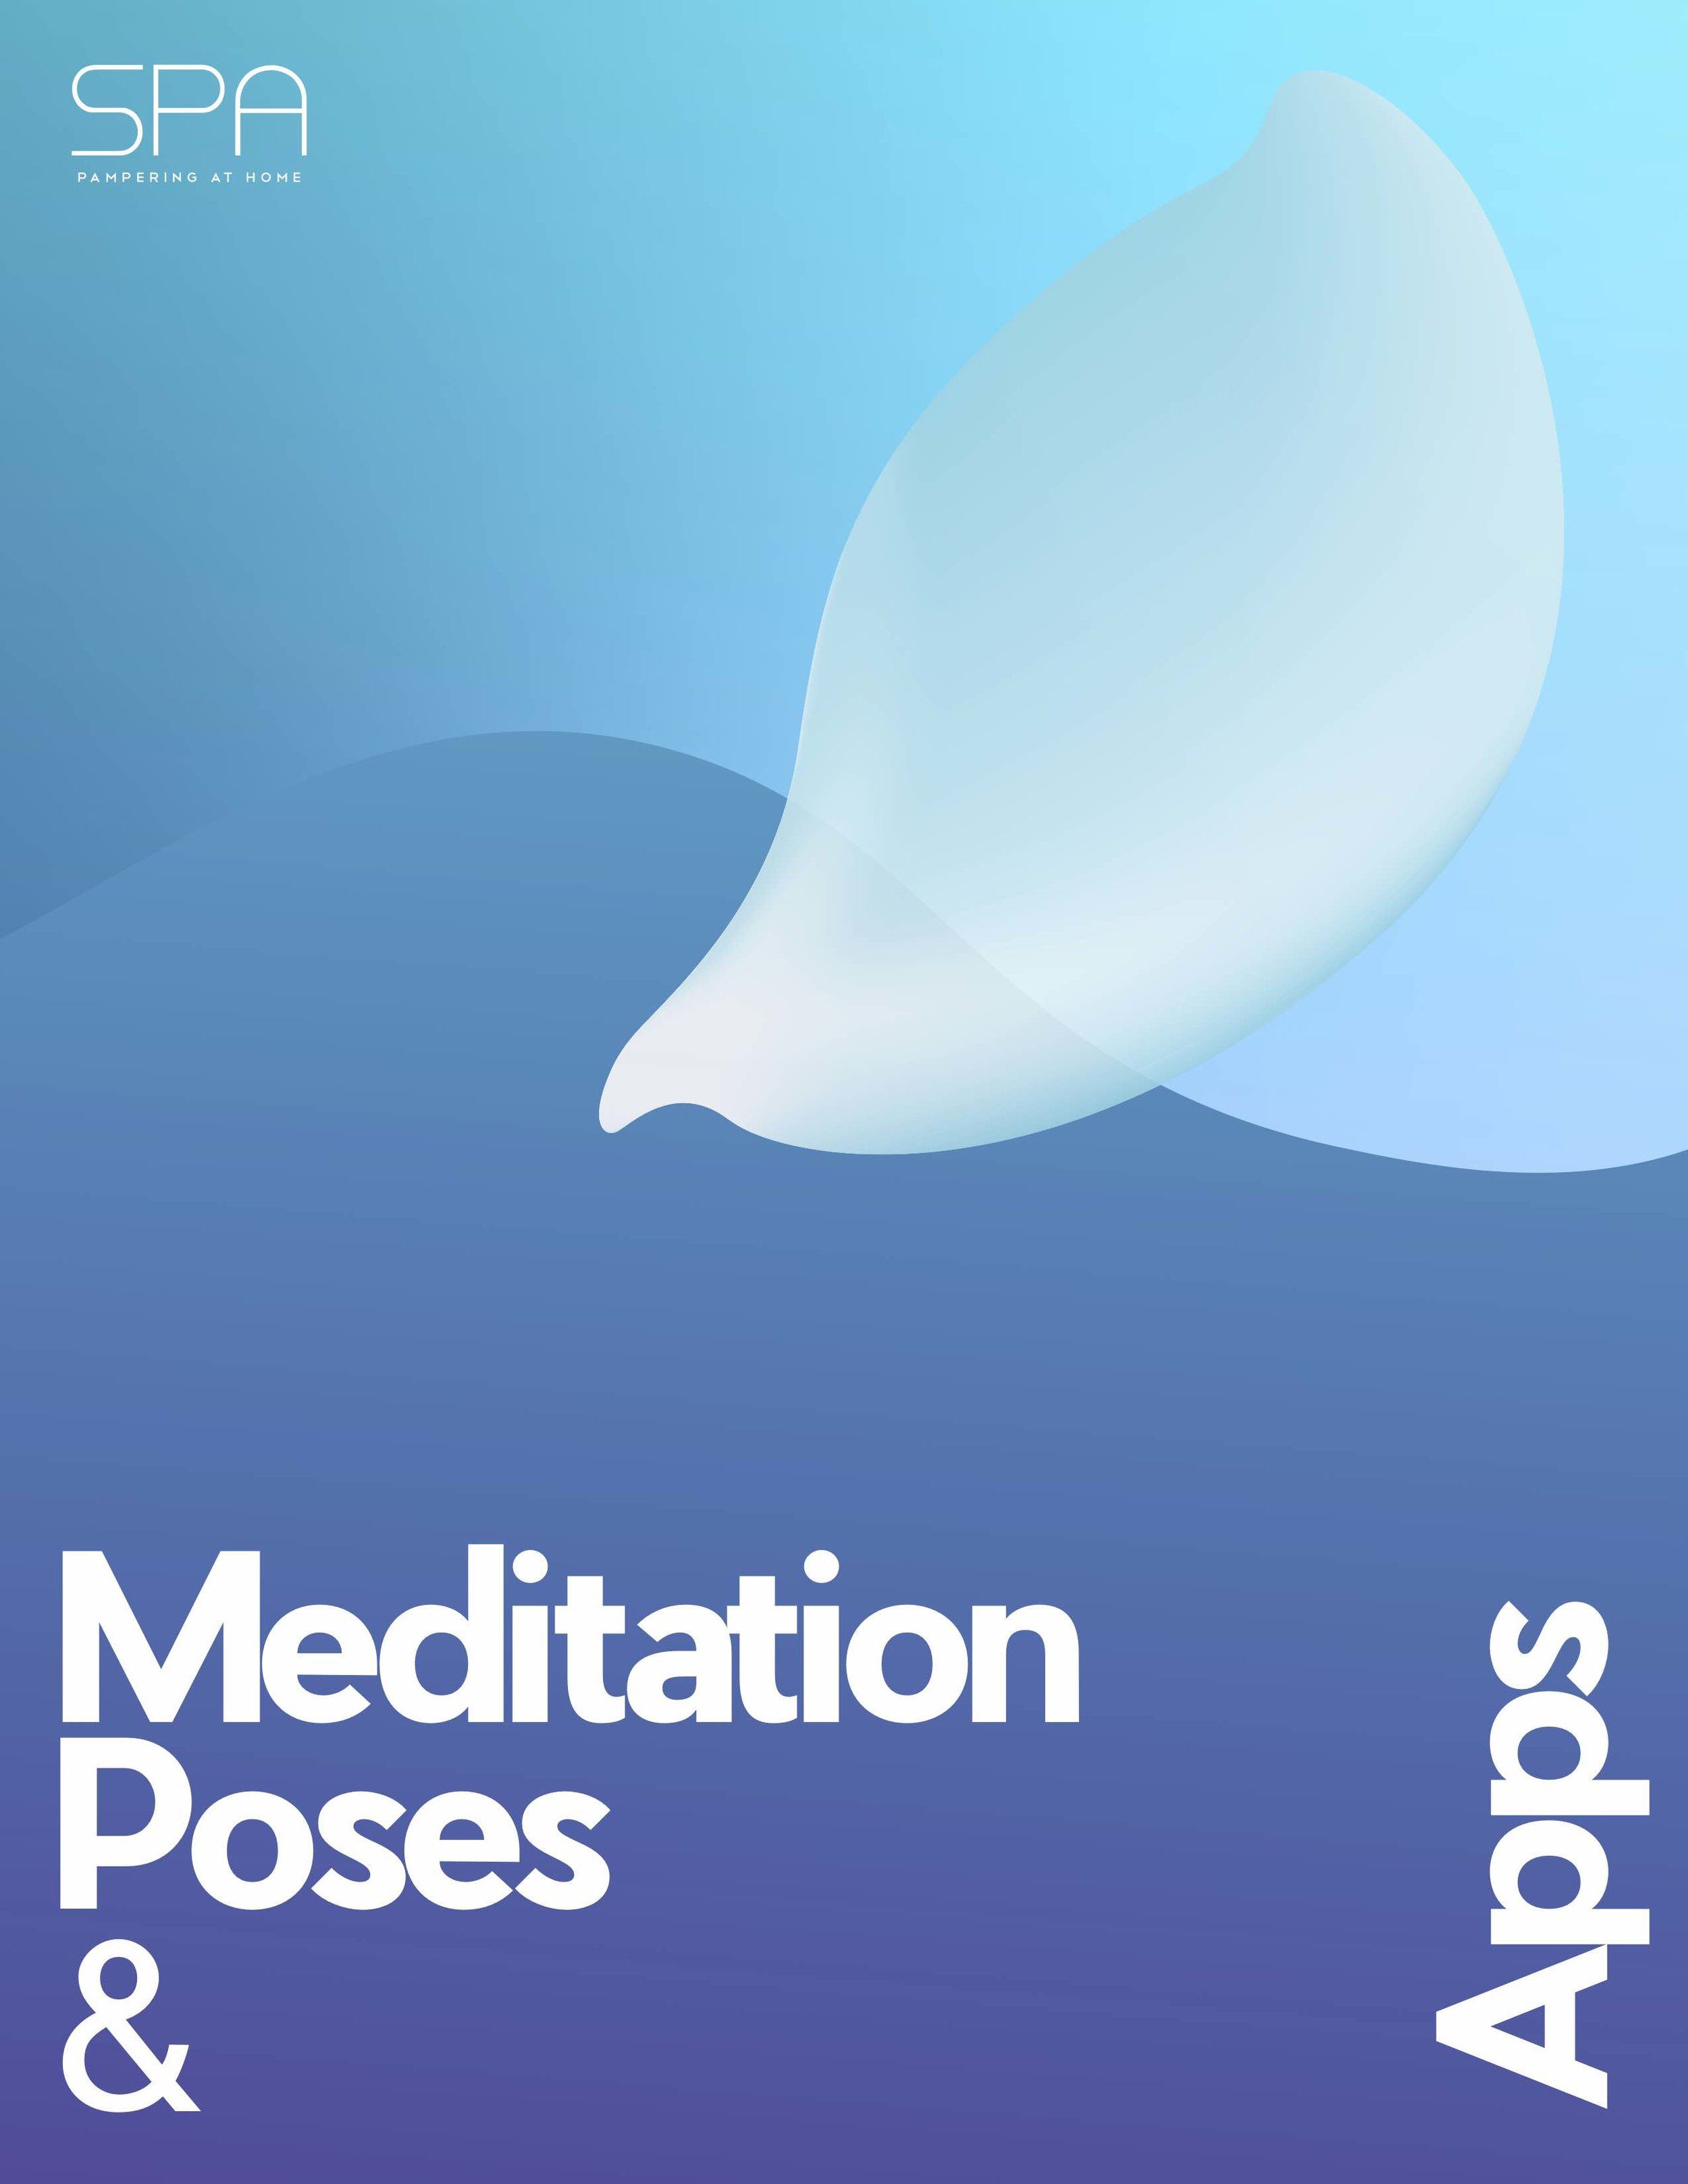 MEDITATION POSE spah.jpg